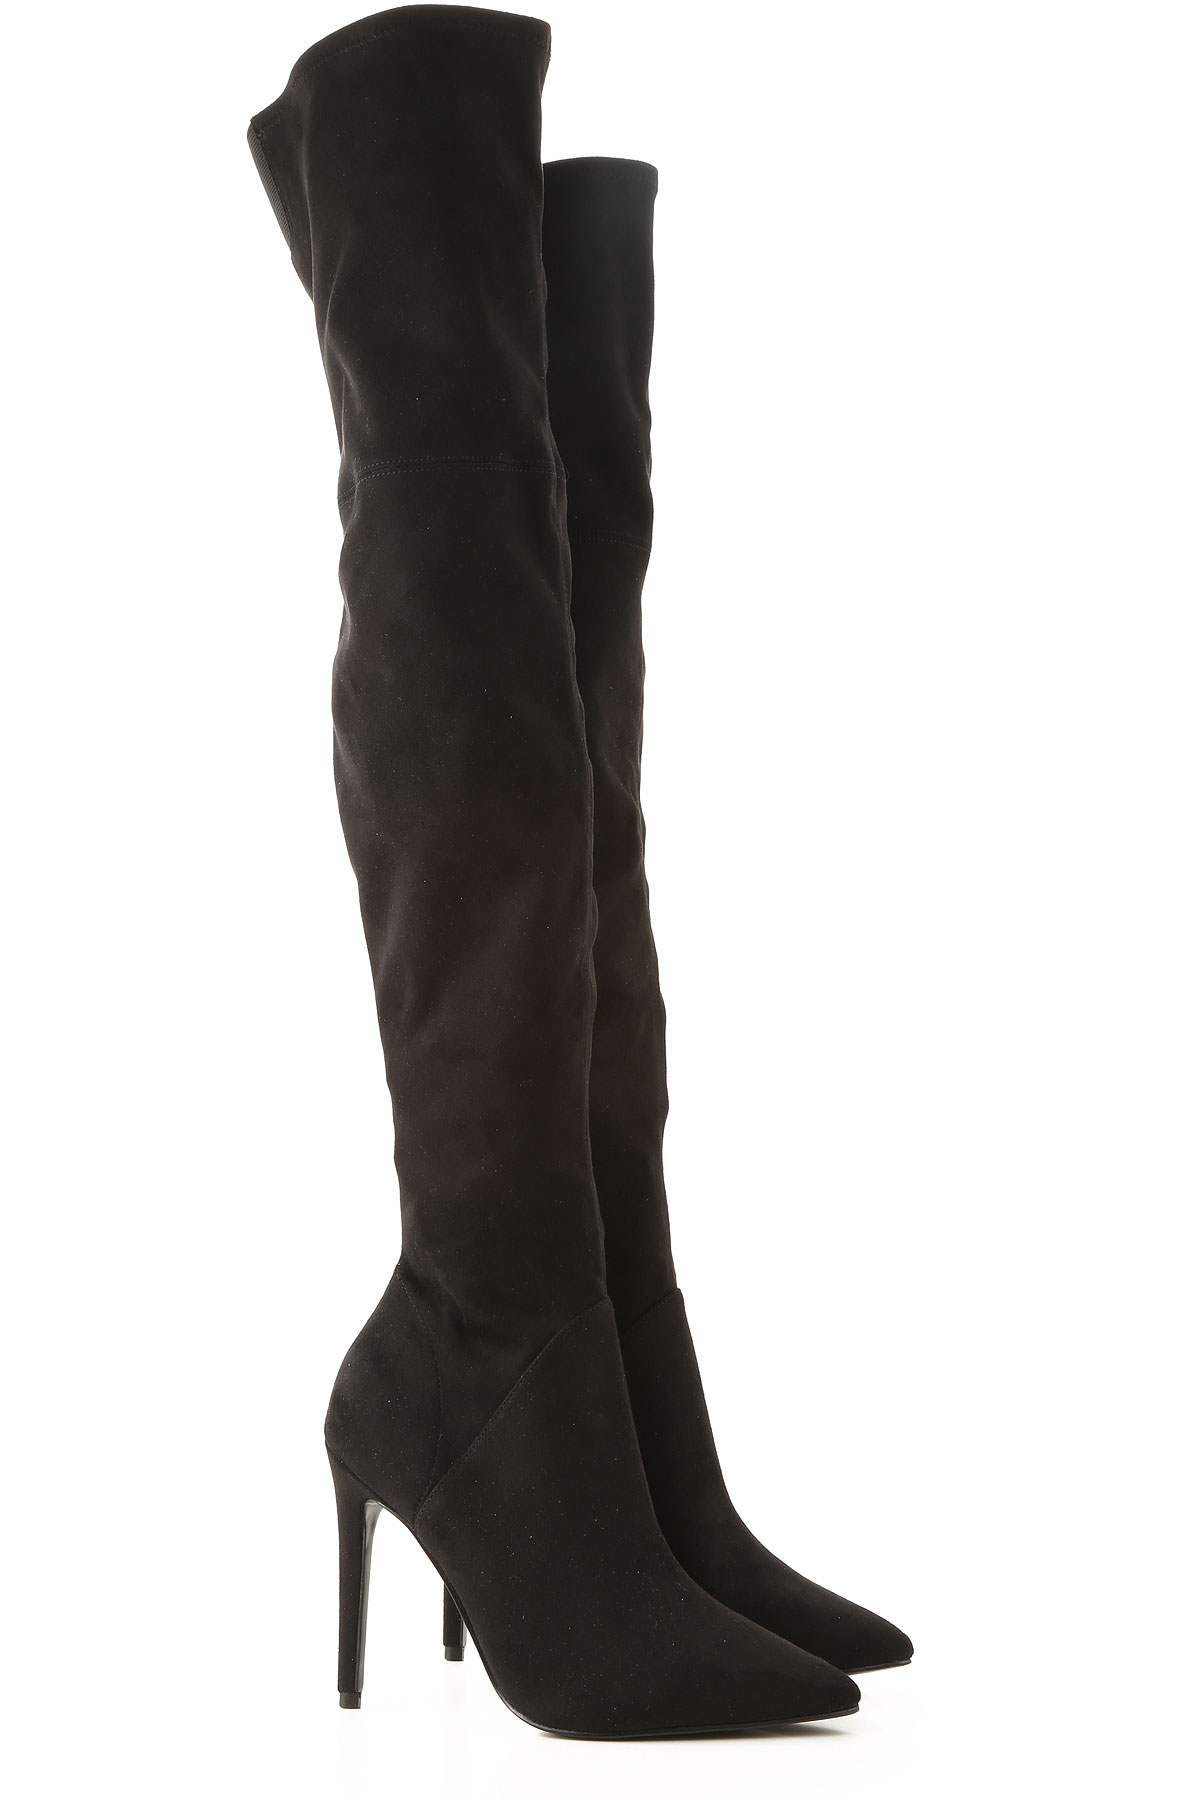 Kendall Kylie Boots for Women, Booties On Sale, Black, Suede leather, 2019, 5.5 6.5 7